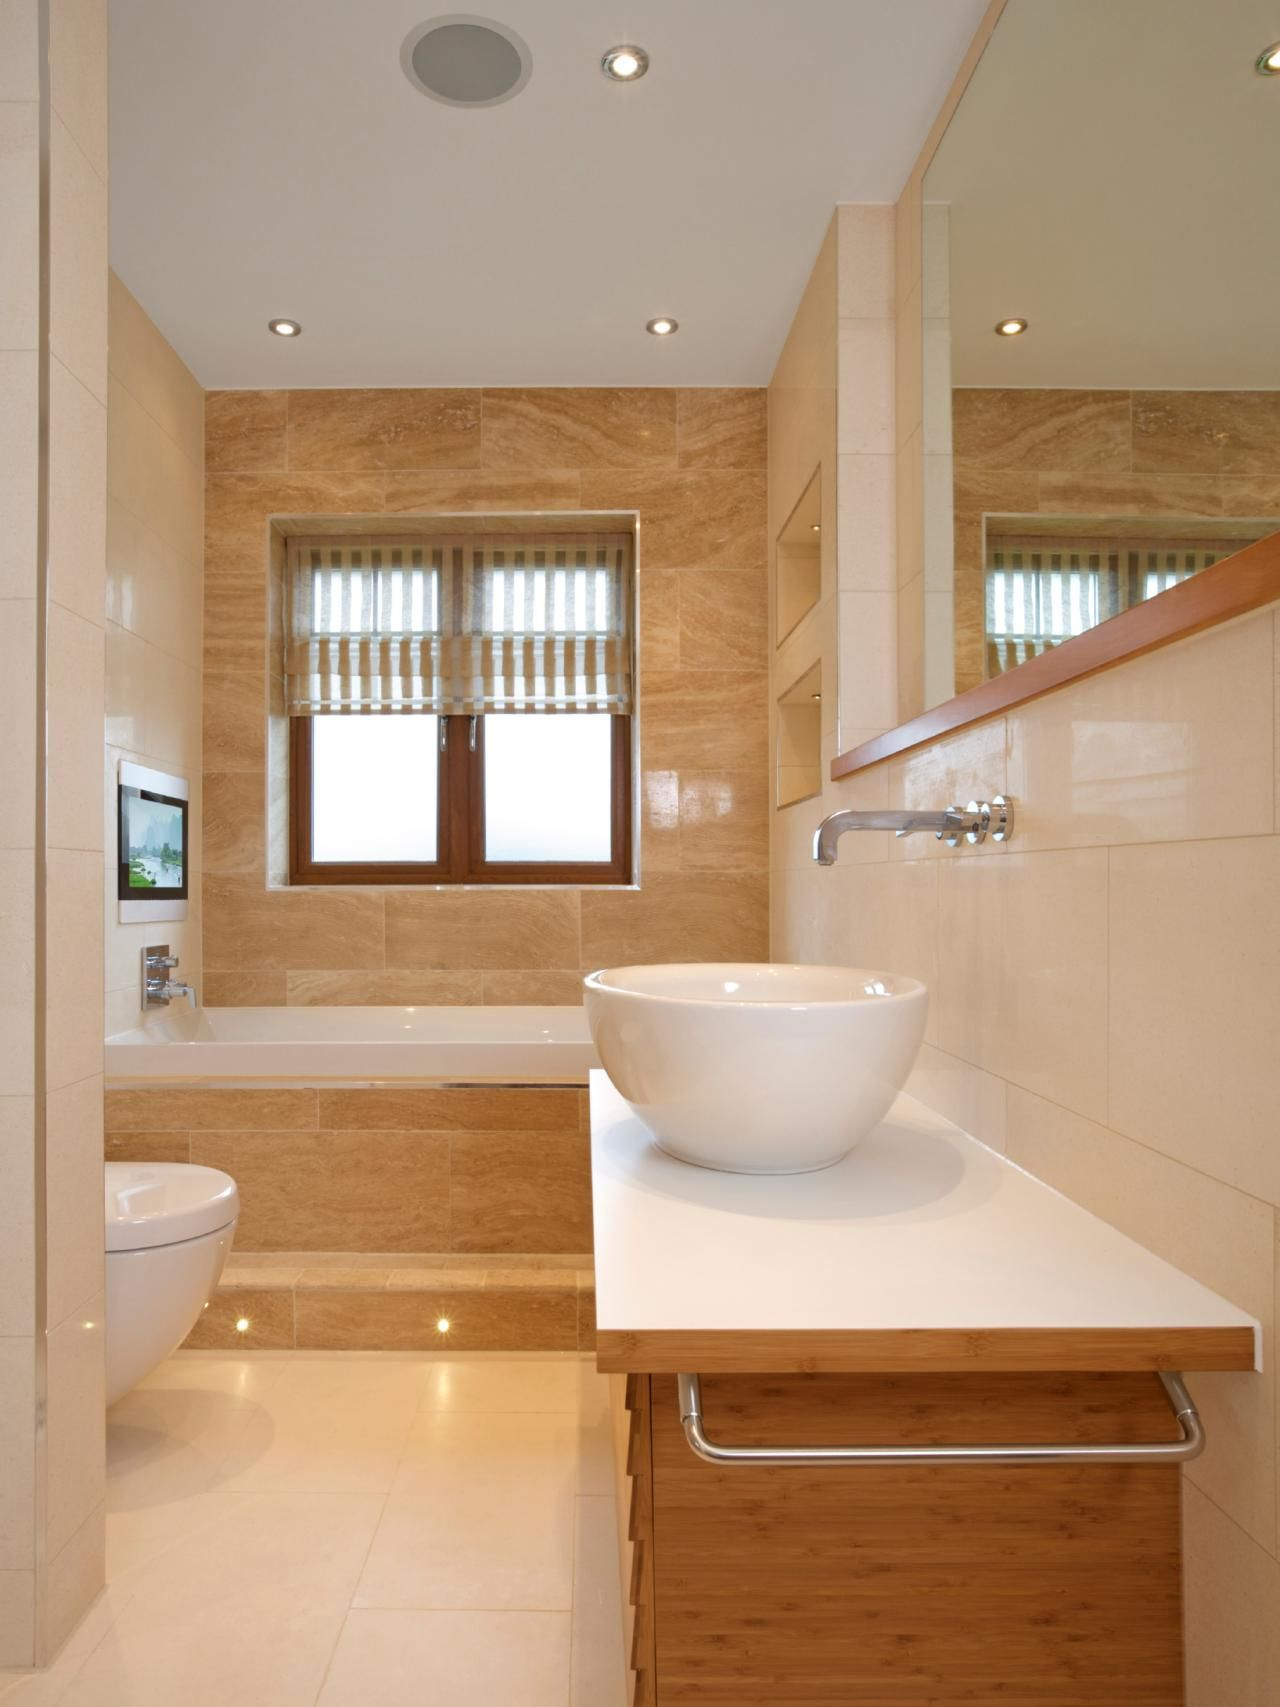 Bring Music Into The Bathroom With A Built In Stereo System And Ceiling Speakers